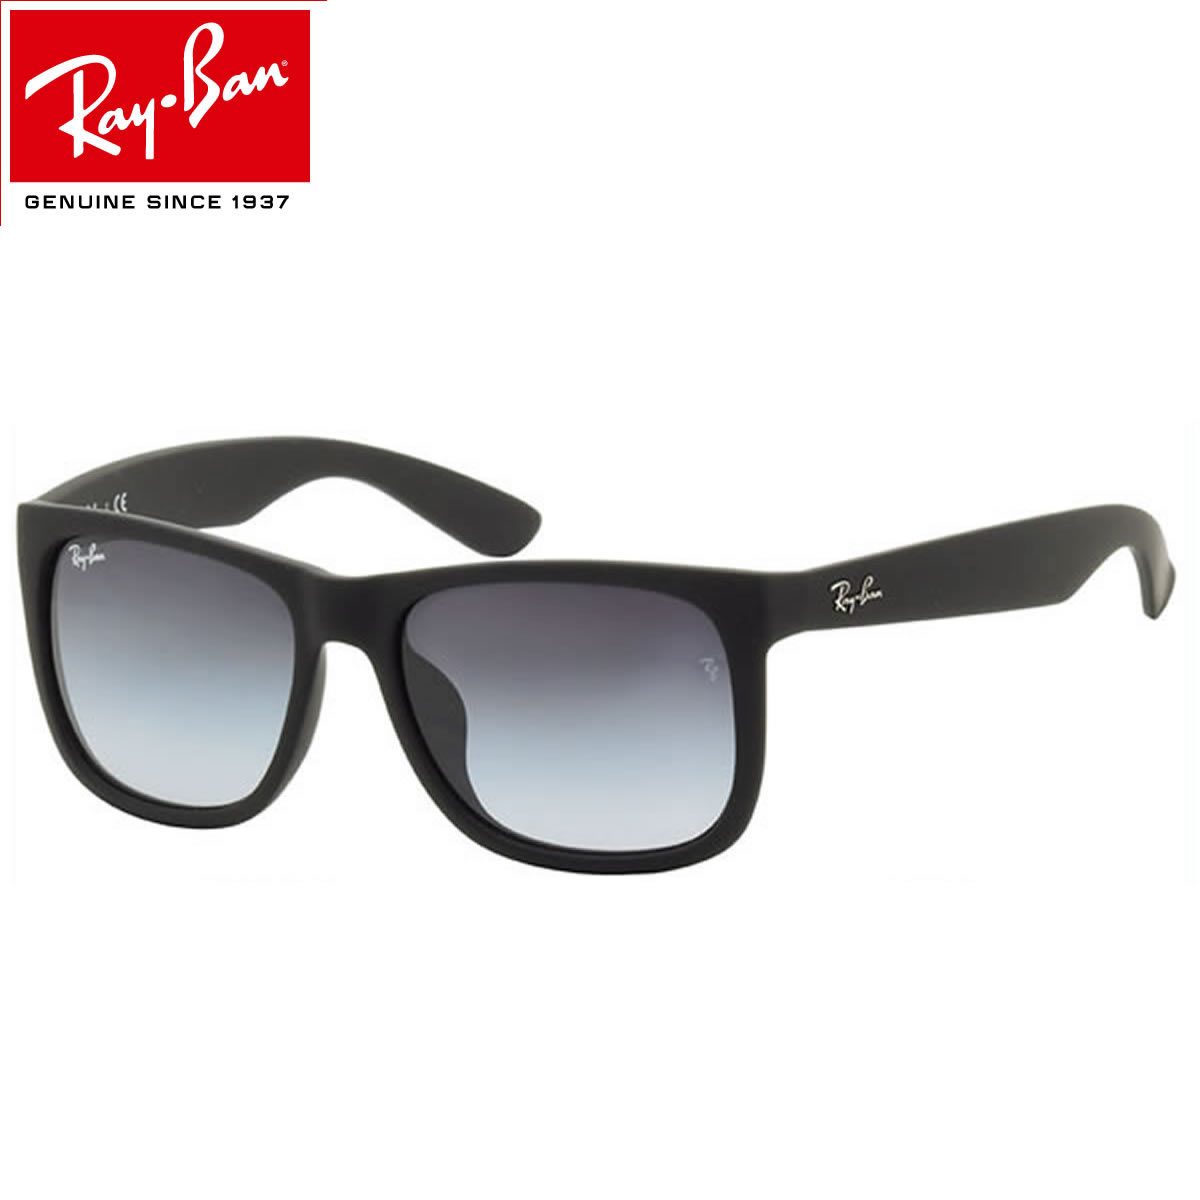 46df909e67 Ray-Ban Sunglasses RB4165F 622 8G 54size JUSTIN FULL FIT (for Asian)  GENUINE NEW rayban ray ban